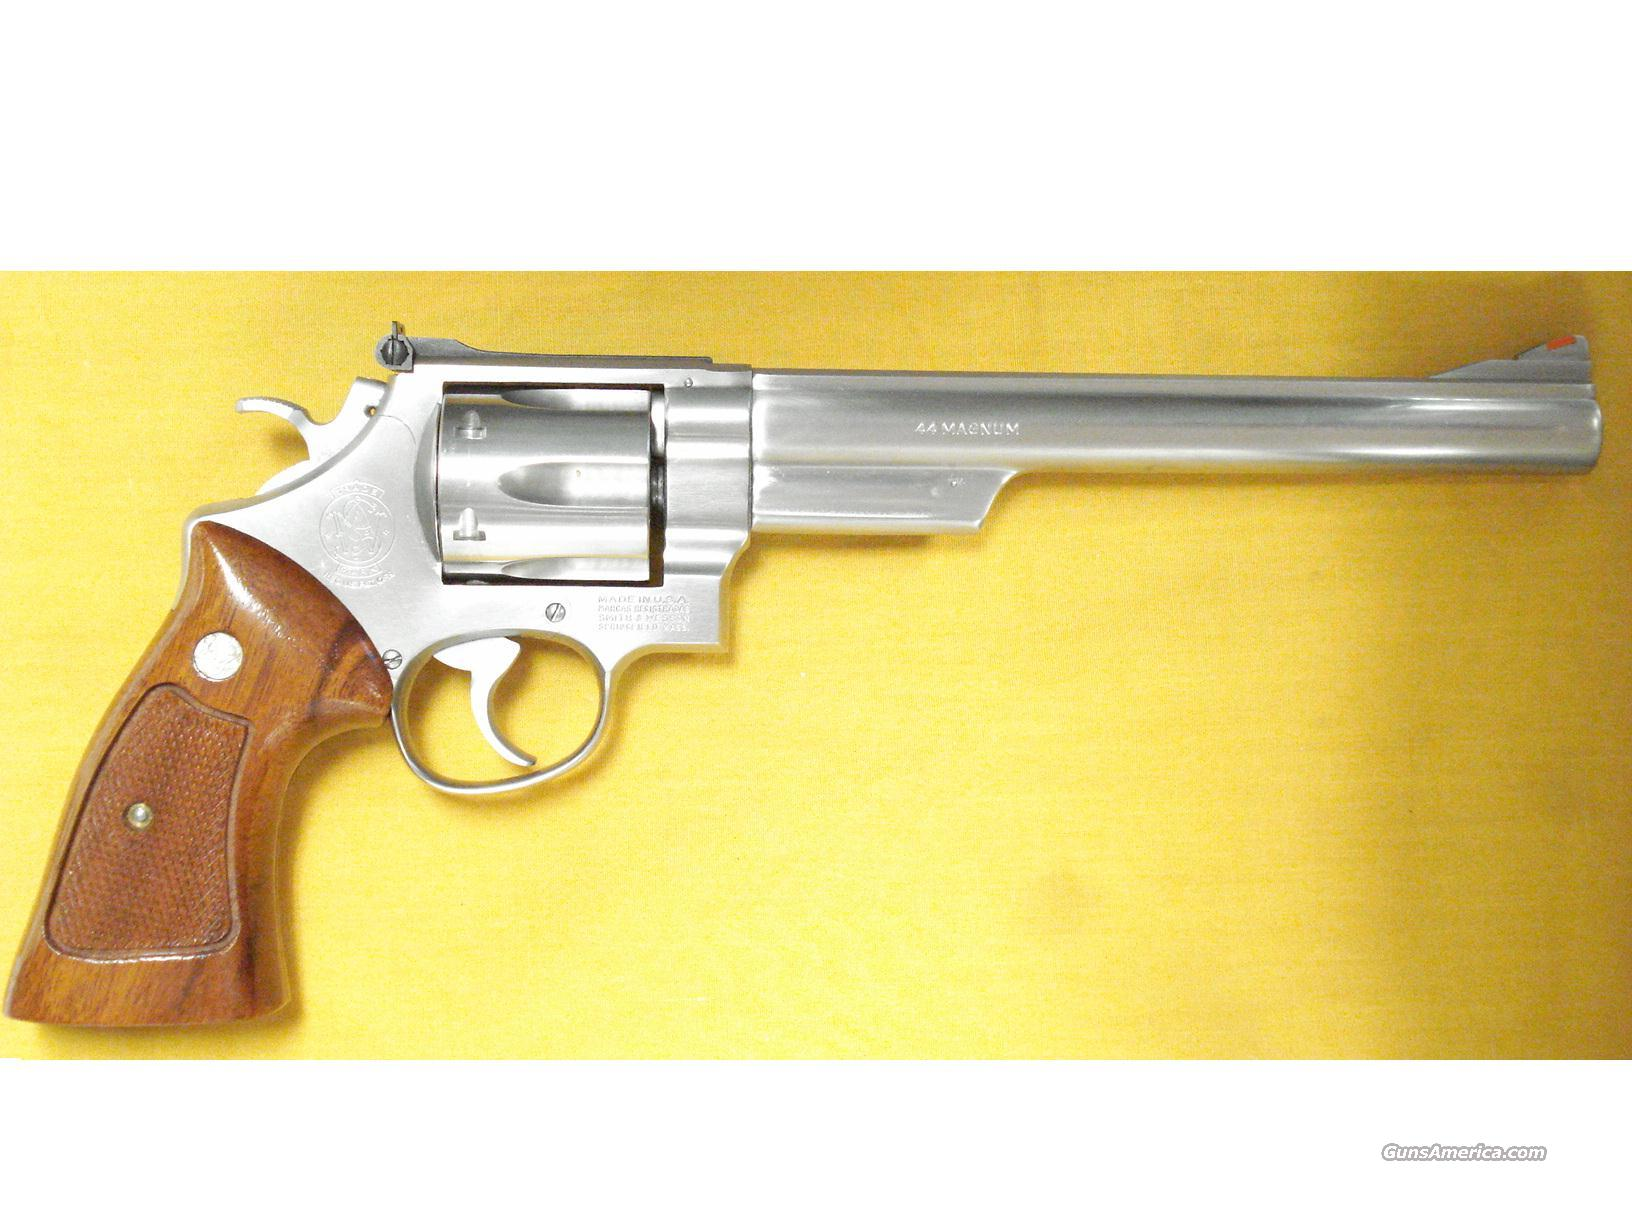 "S&W 629 .44 MAG.8 1/2"" BARREL ALL STAINLESS  Guns > Pistols > Smith & Wesson Revolvers > Model 629"